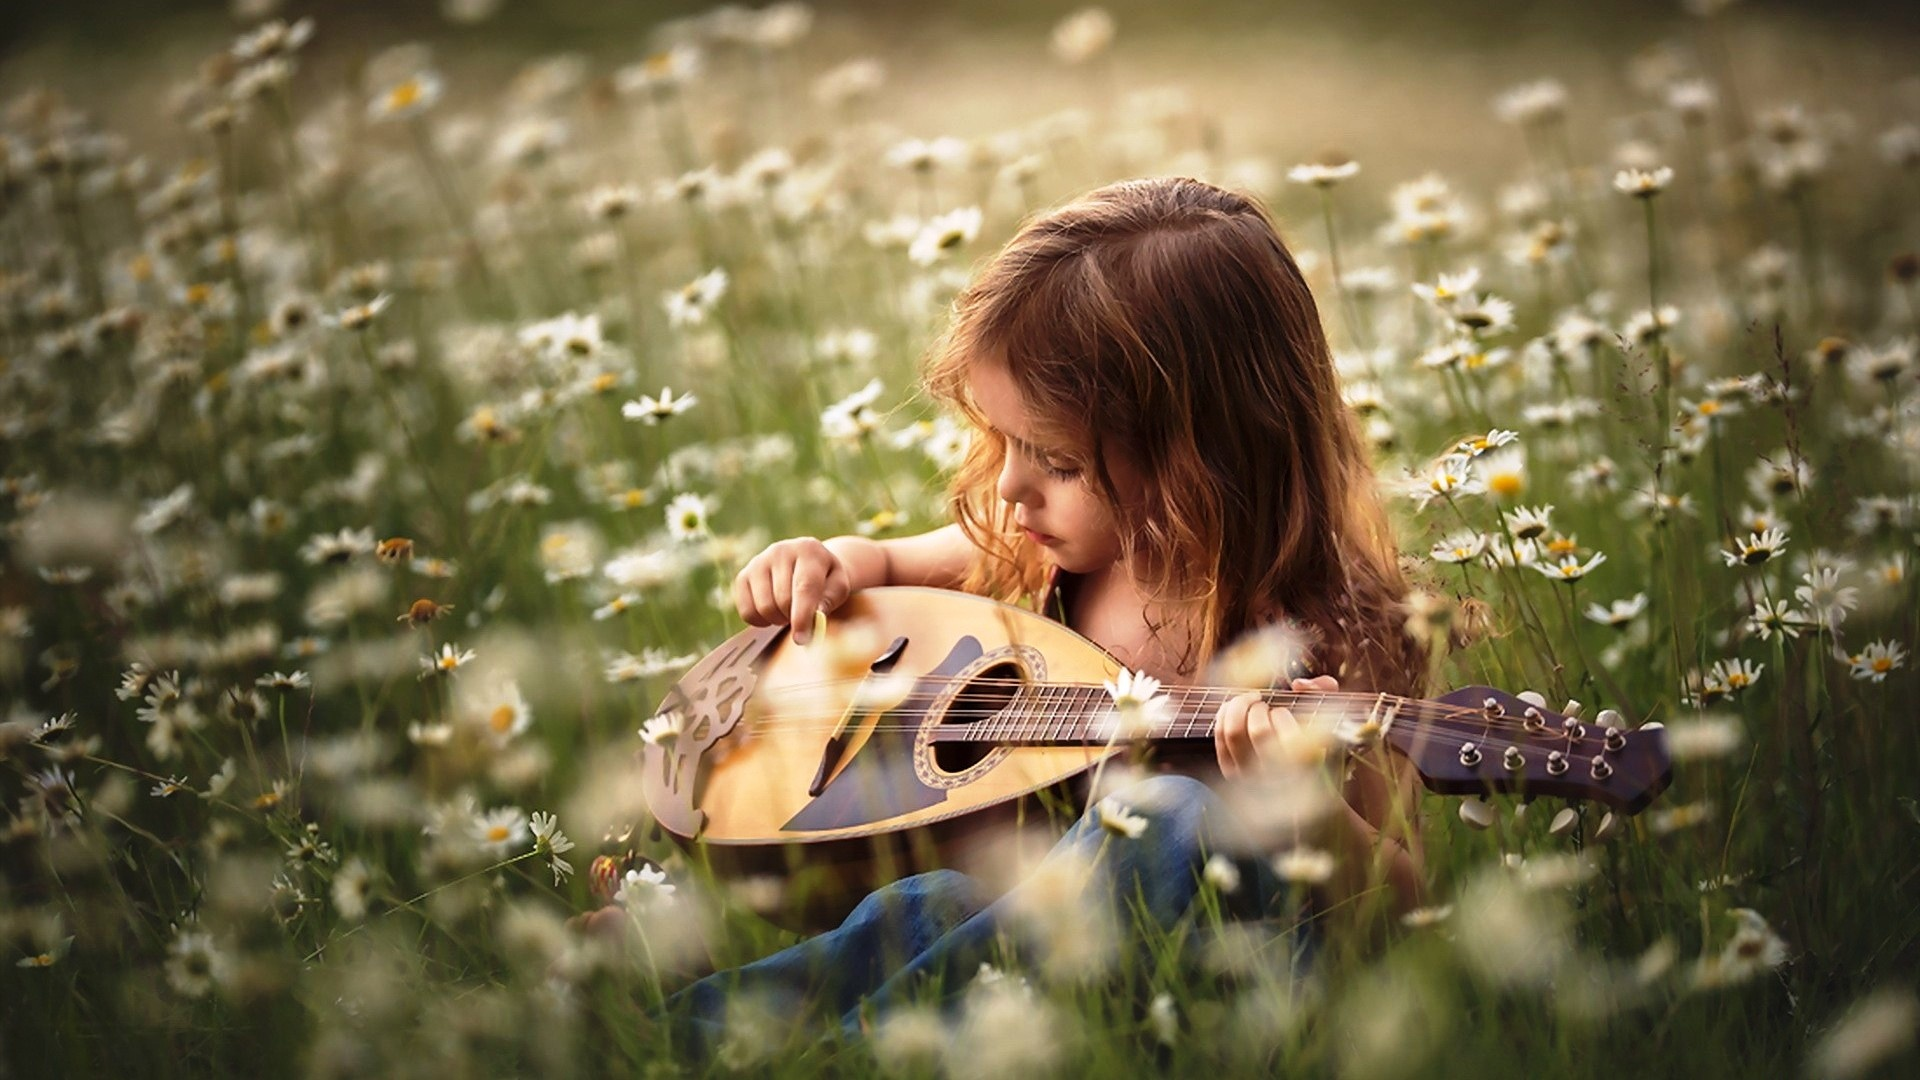 Summer Girl Playing Mini Guitar Wallpapers - 1920x1080 ...